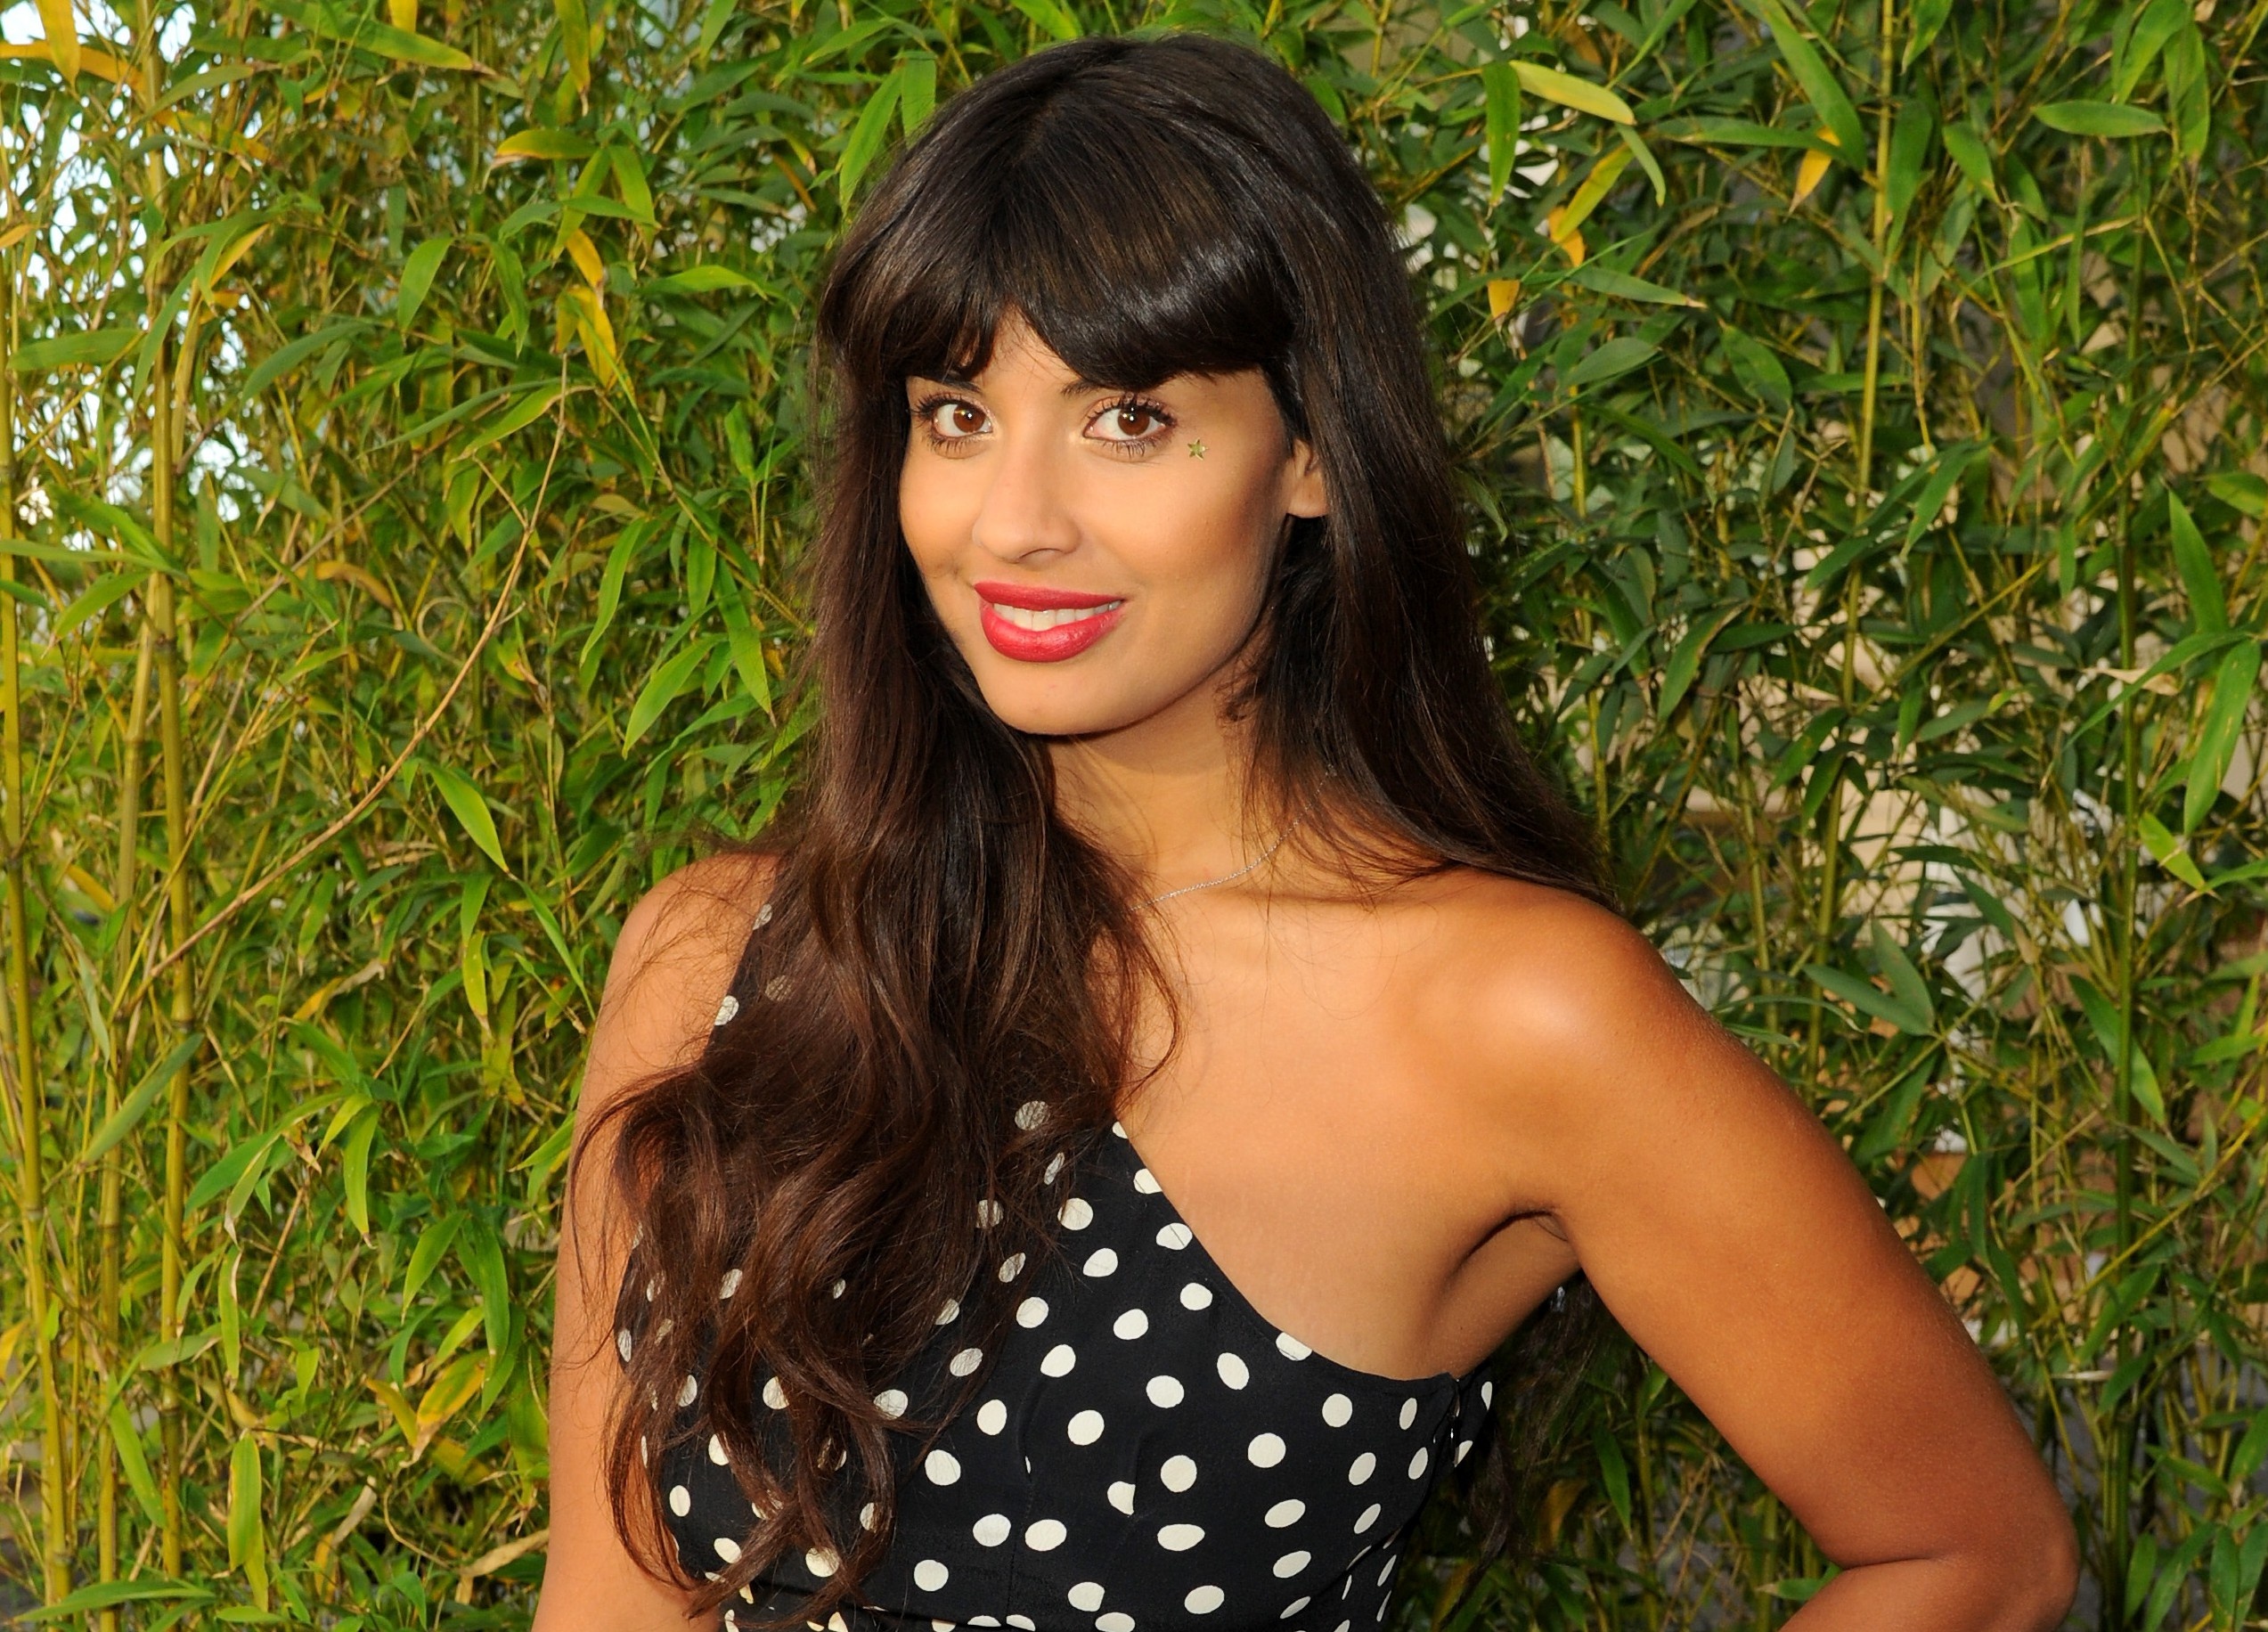 TV and radio presenter Jameela Jamil is going for a massive career change